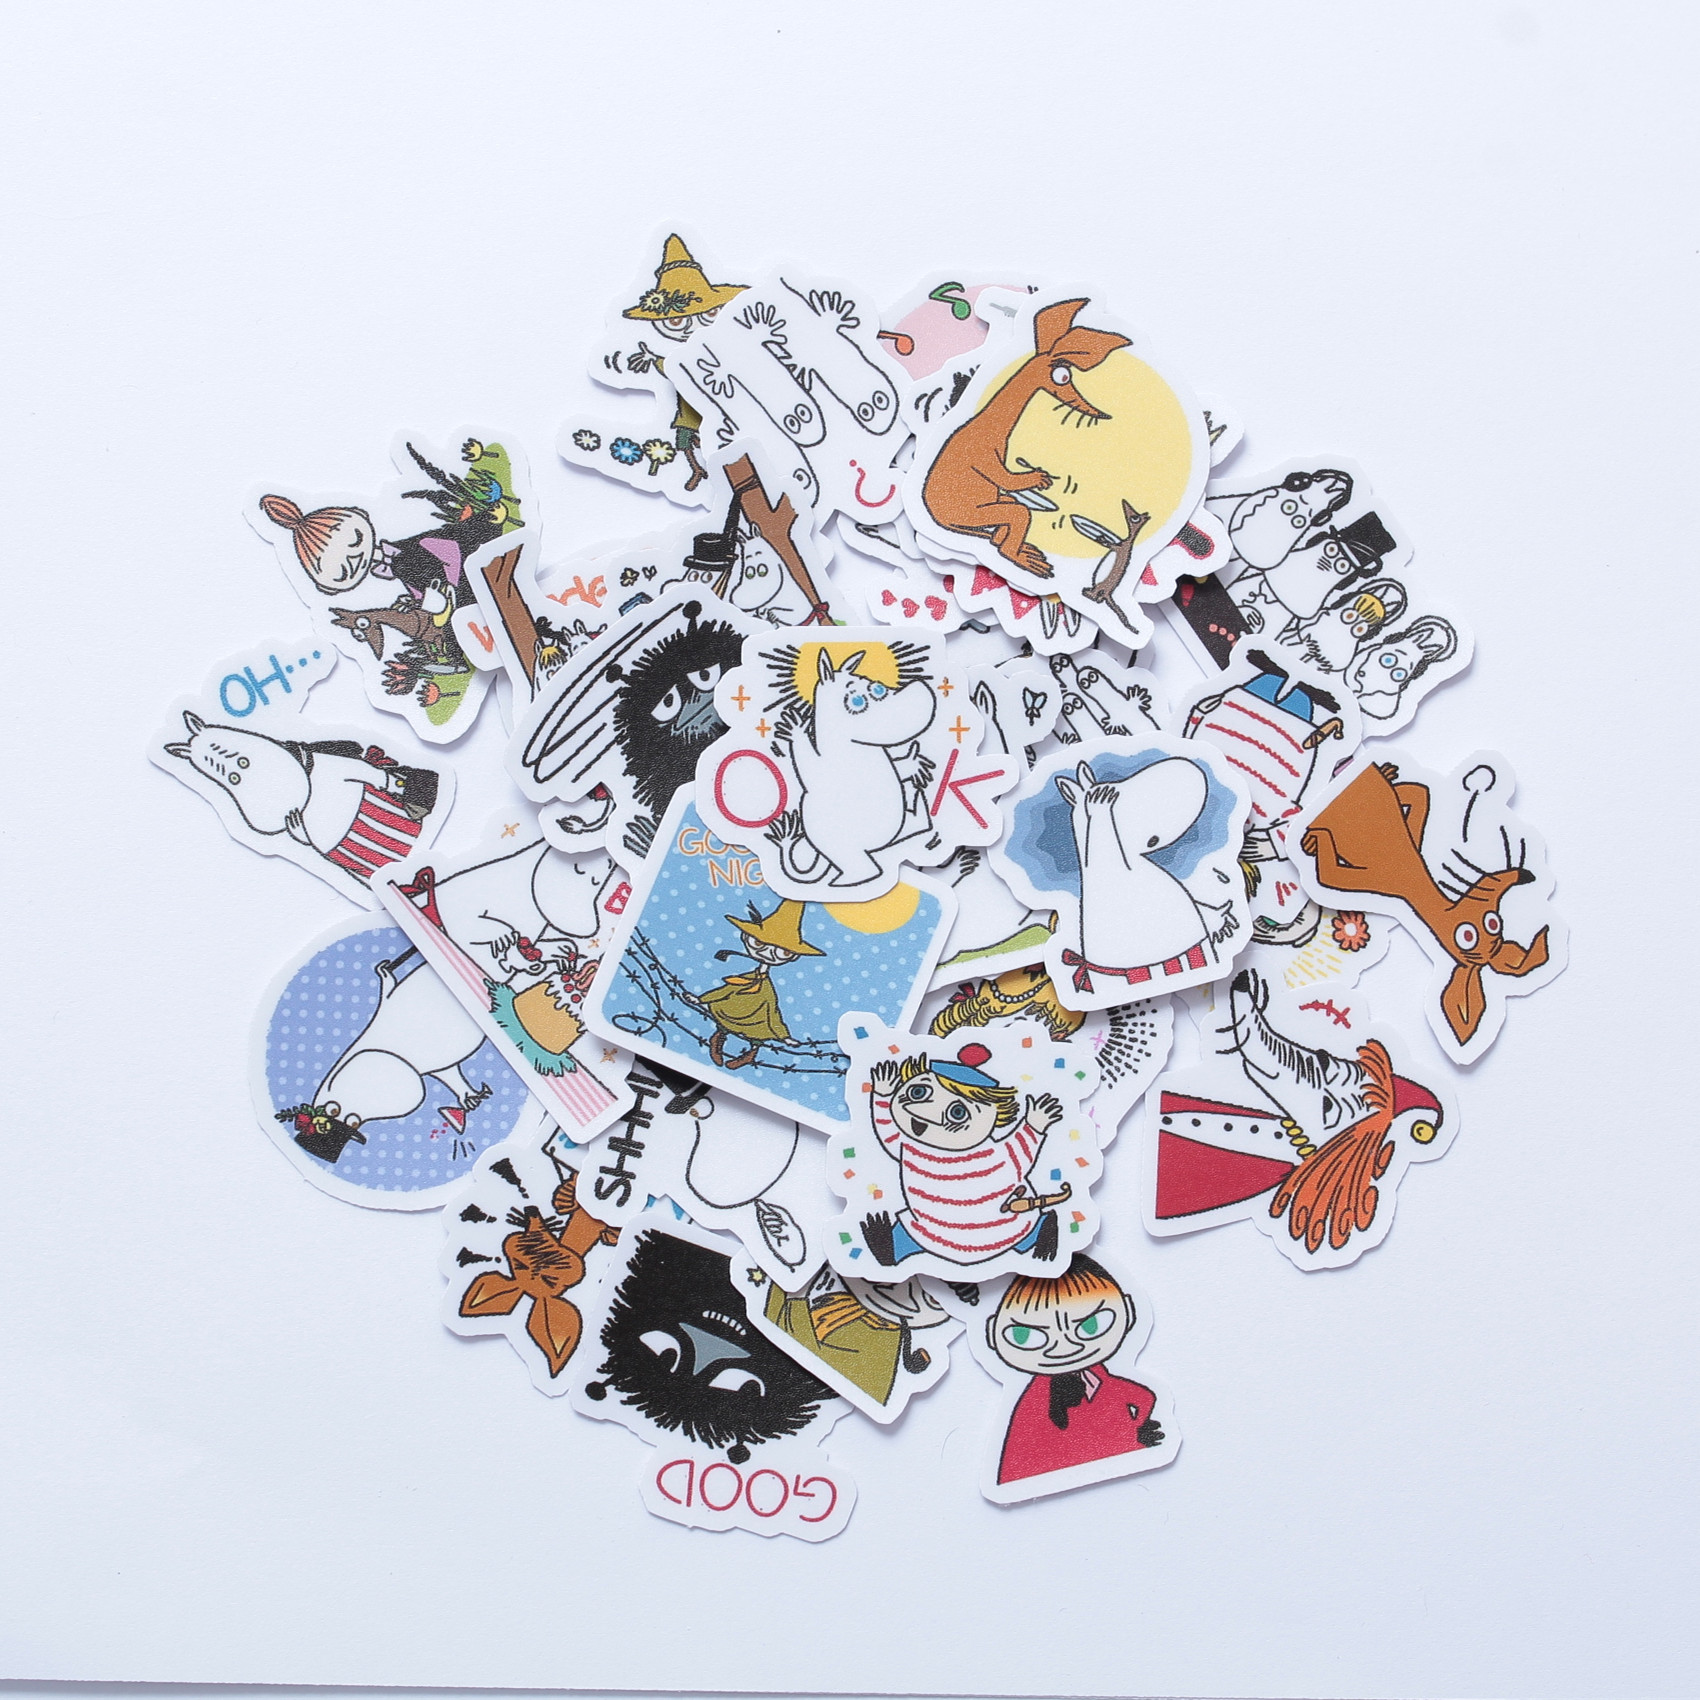 40 PCs Book Sticker Waterproof Travel Luggage Fashion Moomin Cartoon Toy Sticker Skateboard Book Fridge Sticker Decor Movie